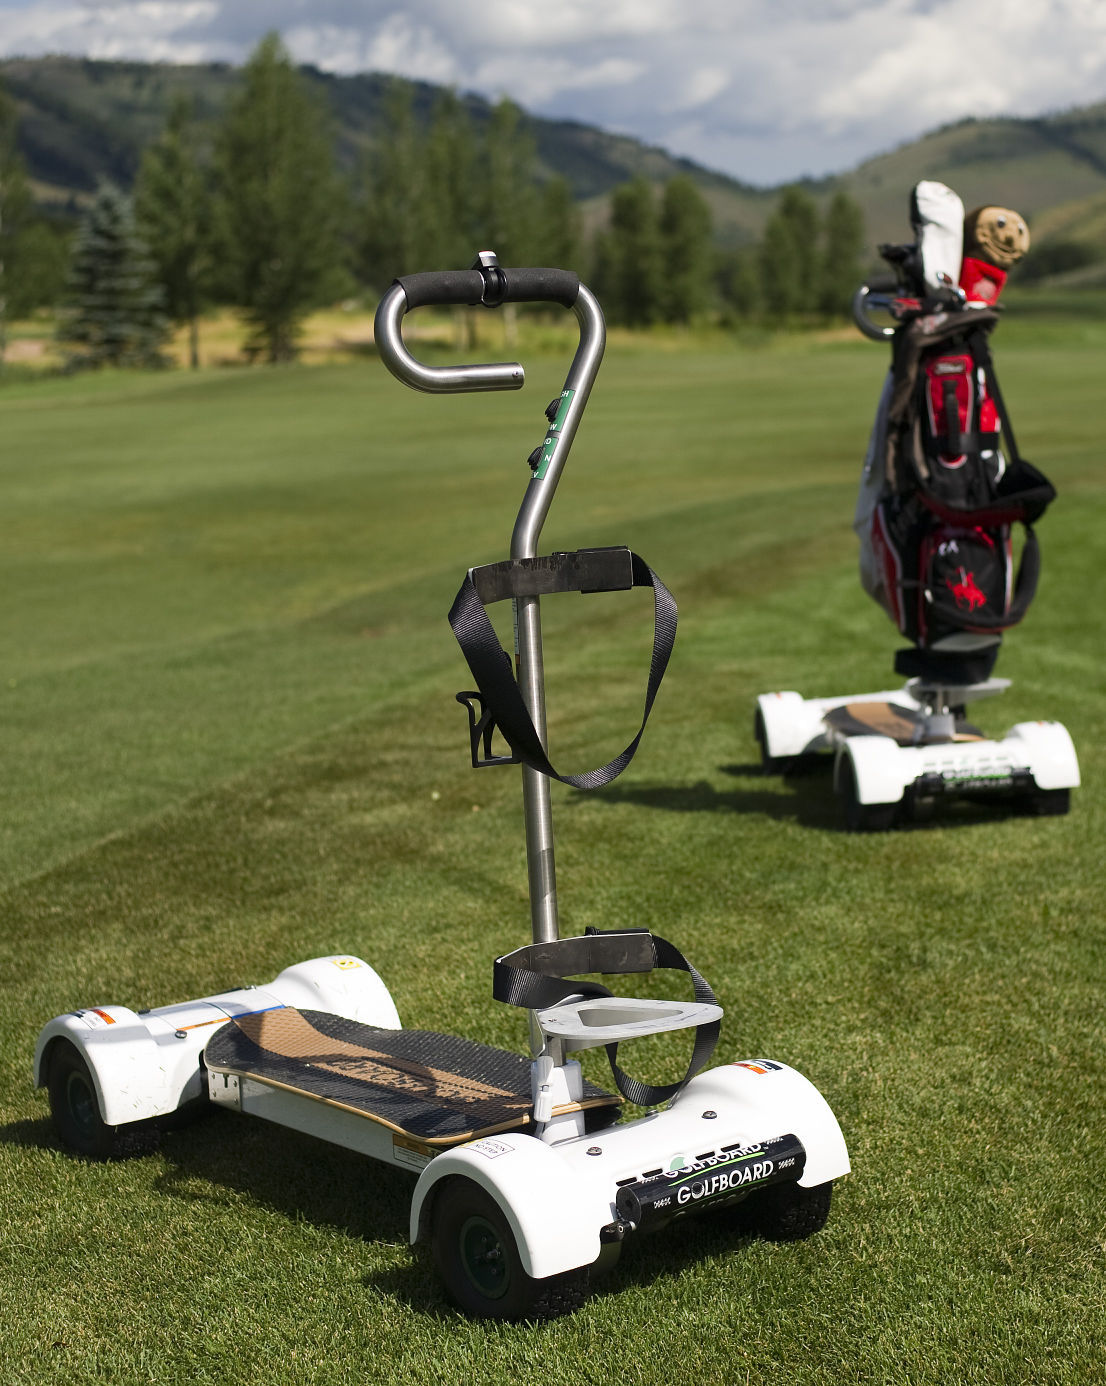 Golfing goes extreme with GolfBoard | Sports Features ... on michael jordan golf cart, adam sandler golf cart, tiger woods golf cart, peyton manning golf cart, surfing golf cart, jeff gordon golf cart,